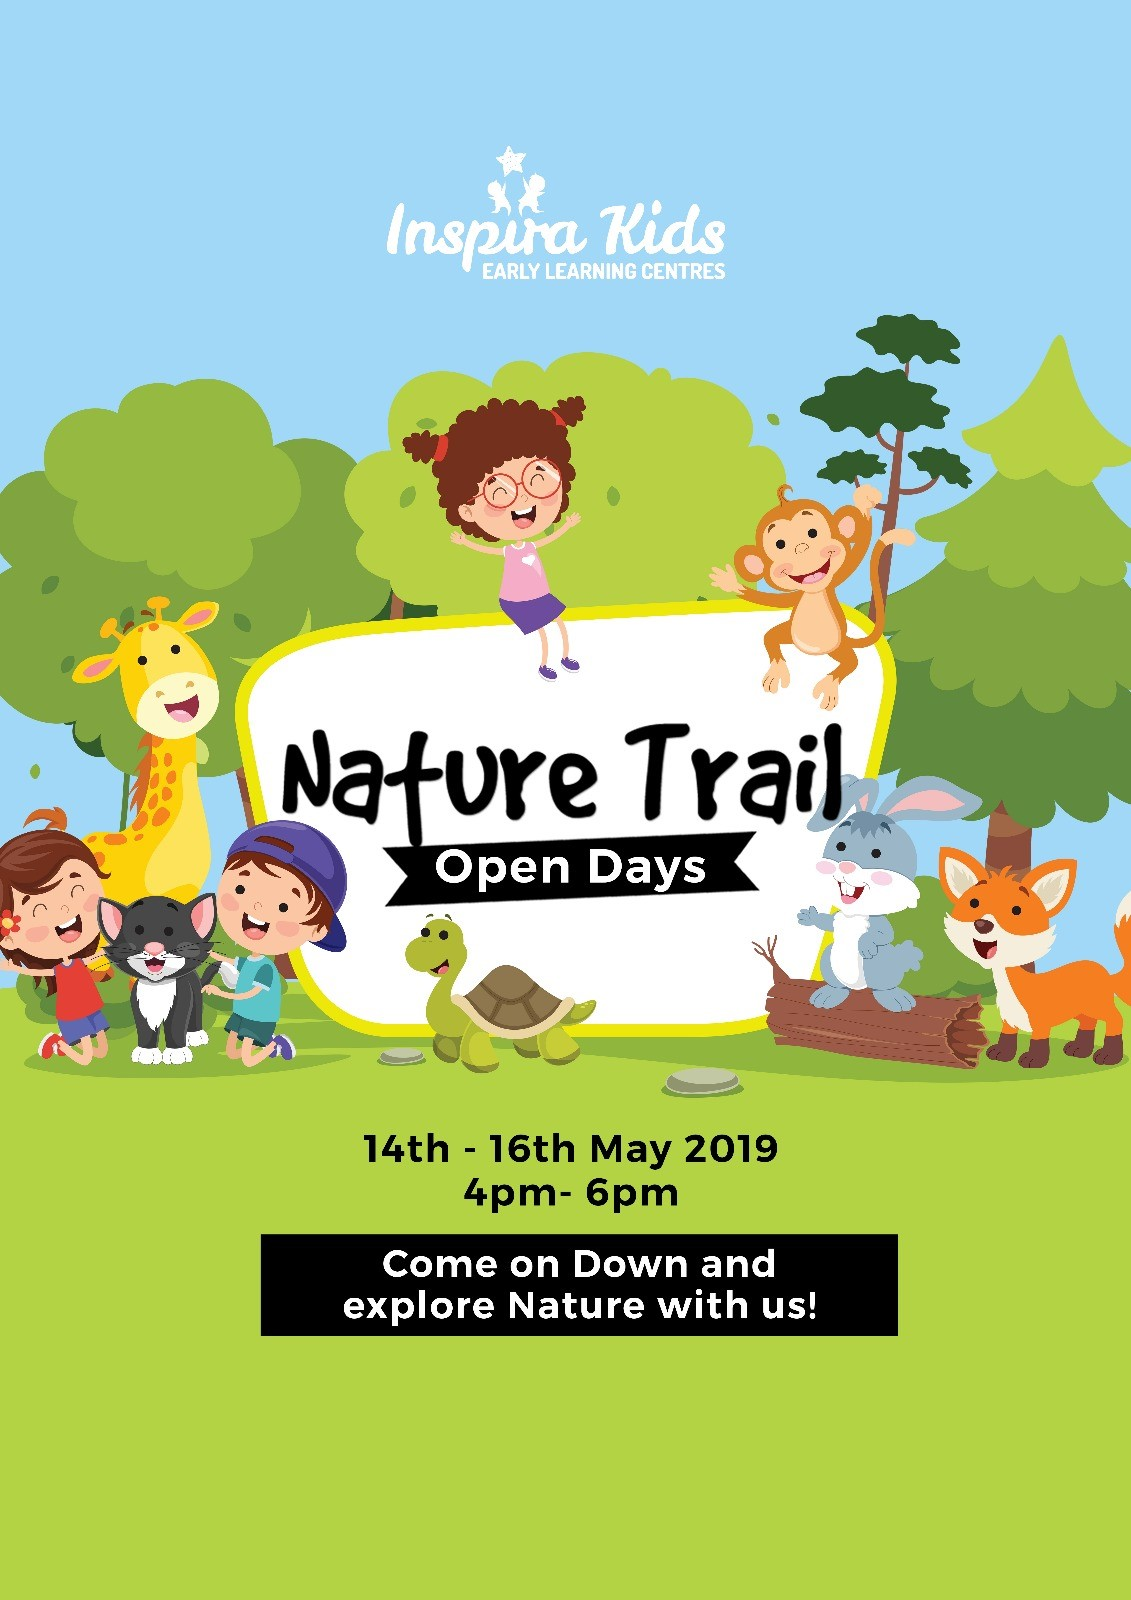 Nature Trail Open Days